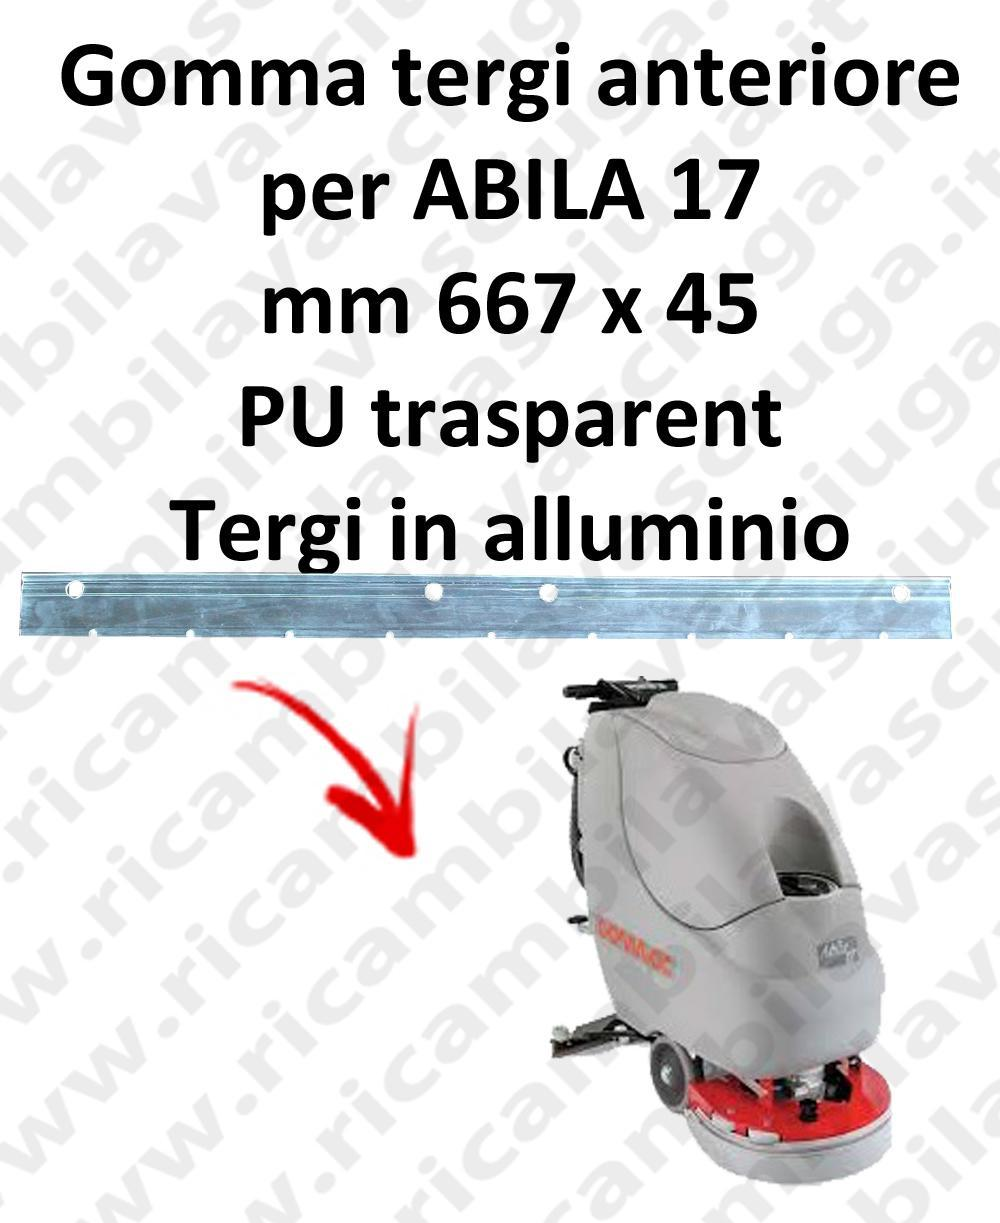 ABILA 17 Front Squeegee rubber for COMAC accessories, reaplacement, spare parts,o scrubber dryer squeegee